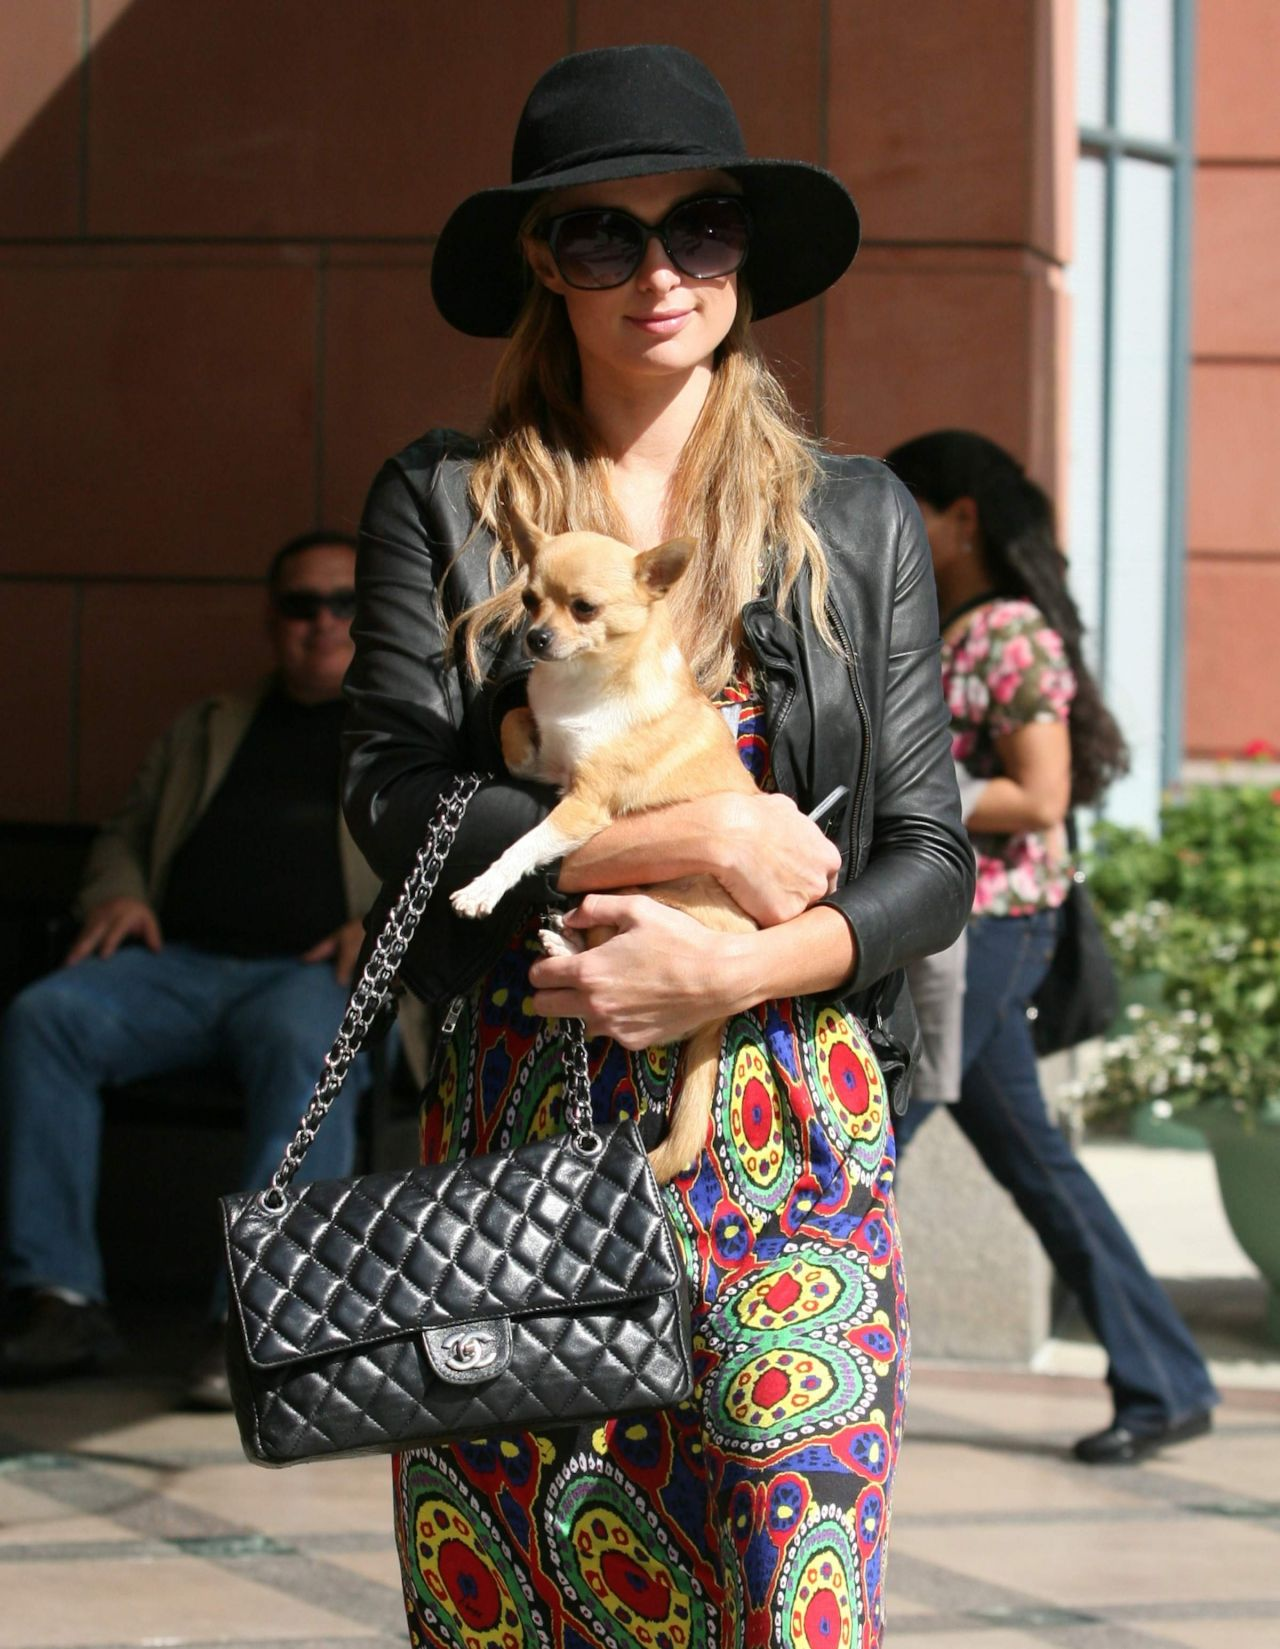 Paris Hilton at Anastasia Salon in Beverly Hills - April 2014